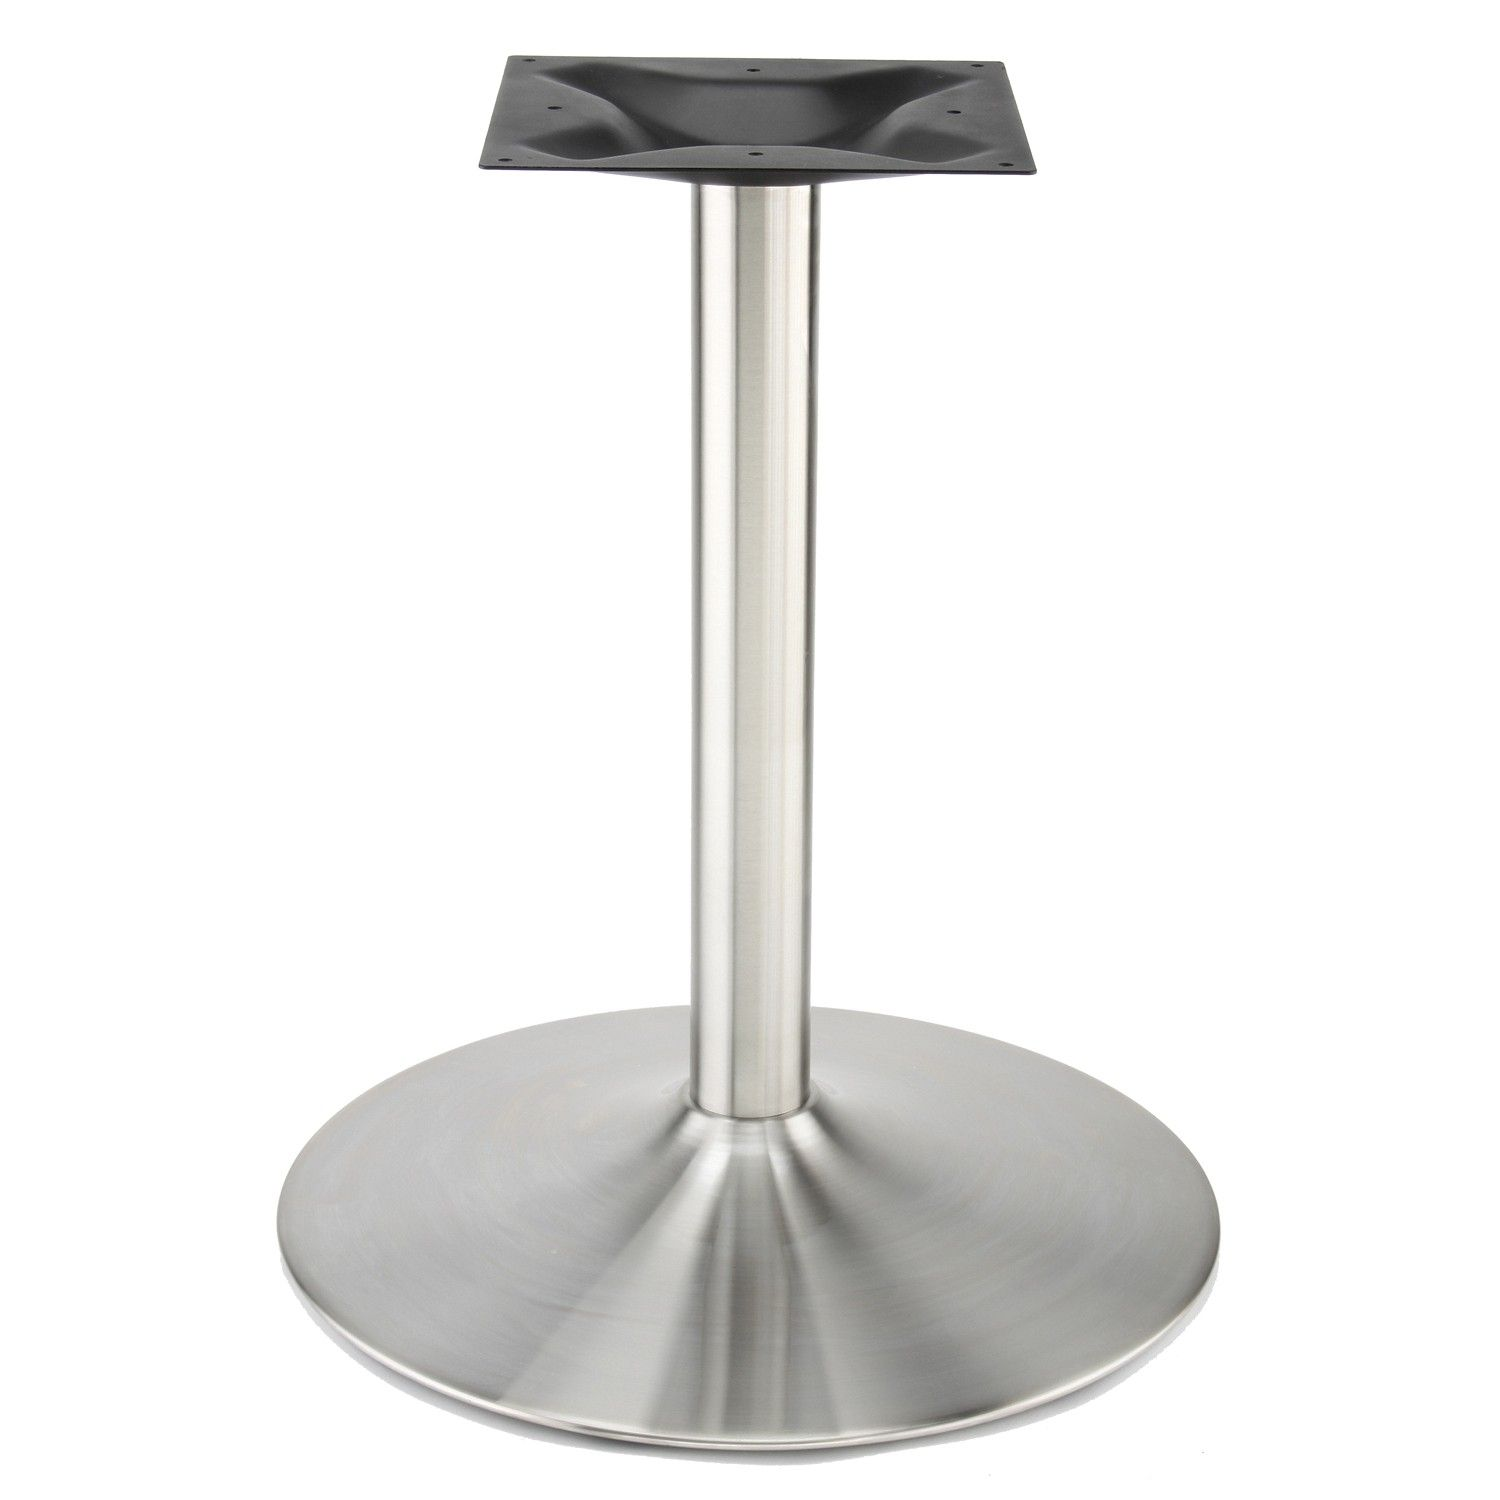 Rwg600 Stainless Steel Table Base Tablebases Quality Bases Metal